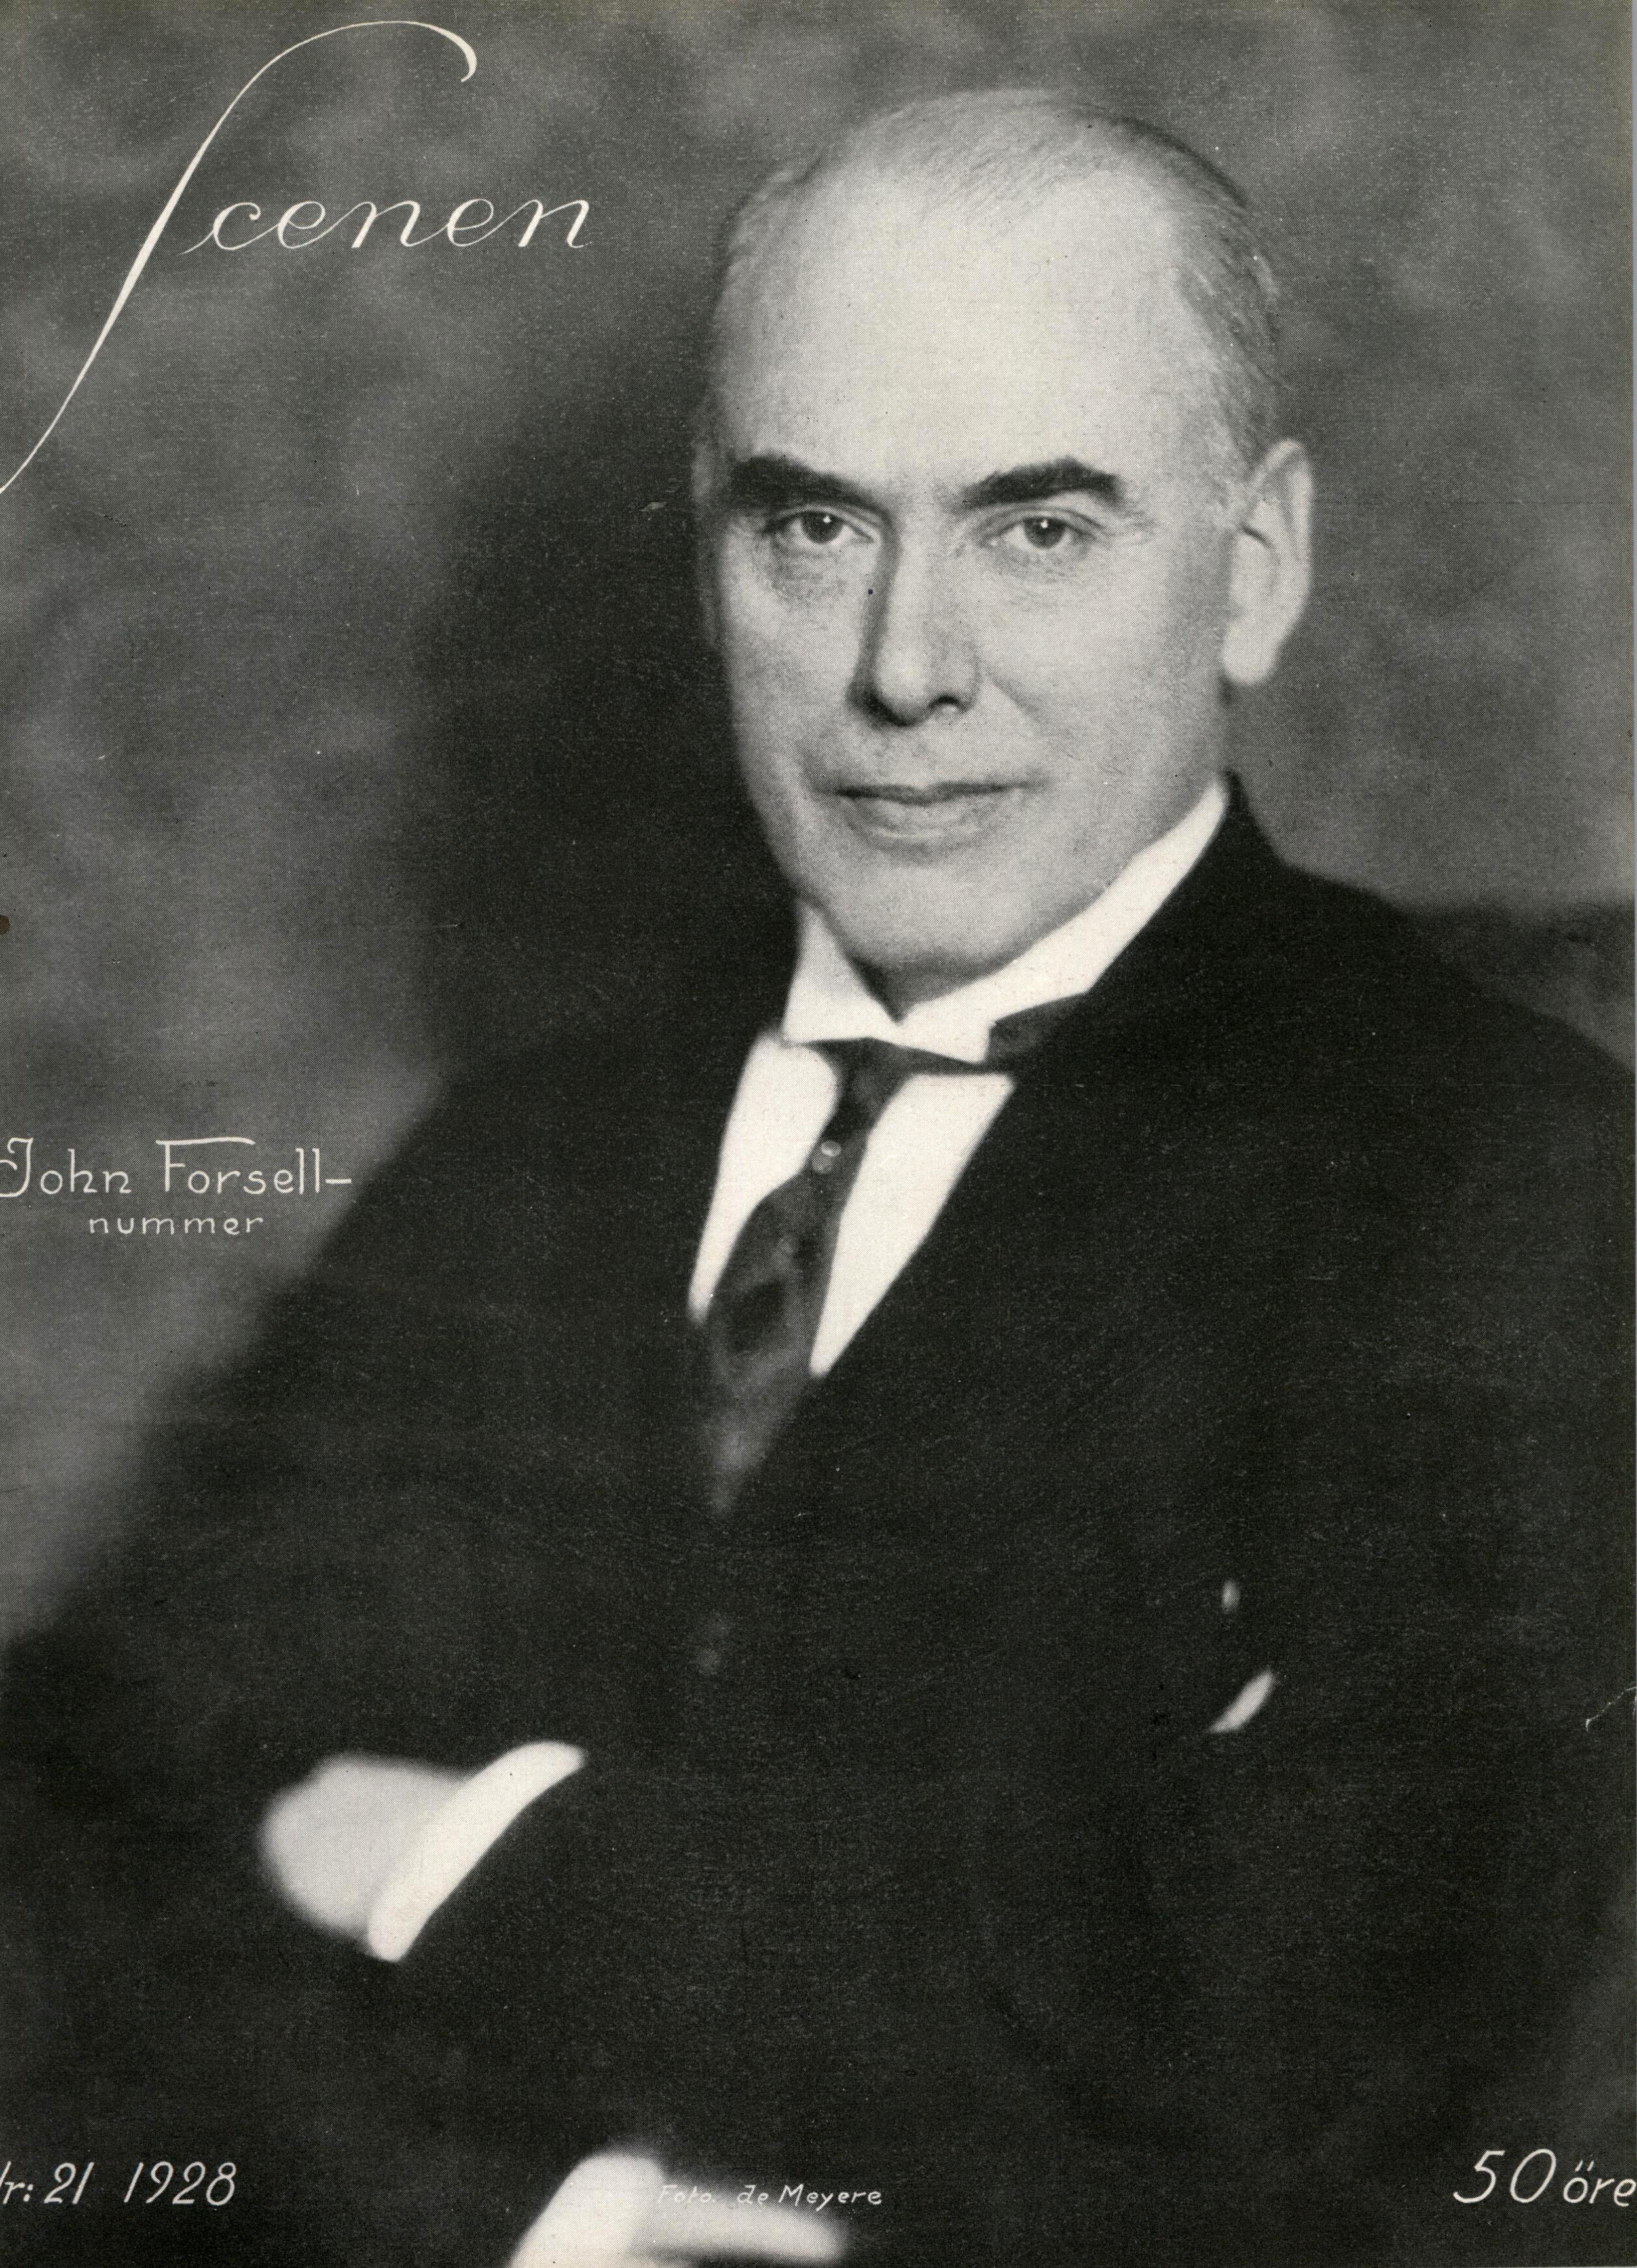 Forsell in 1928